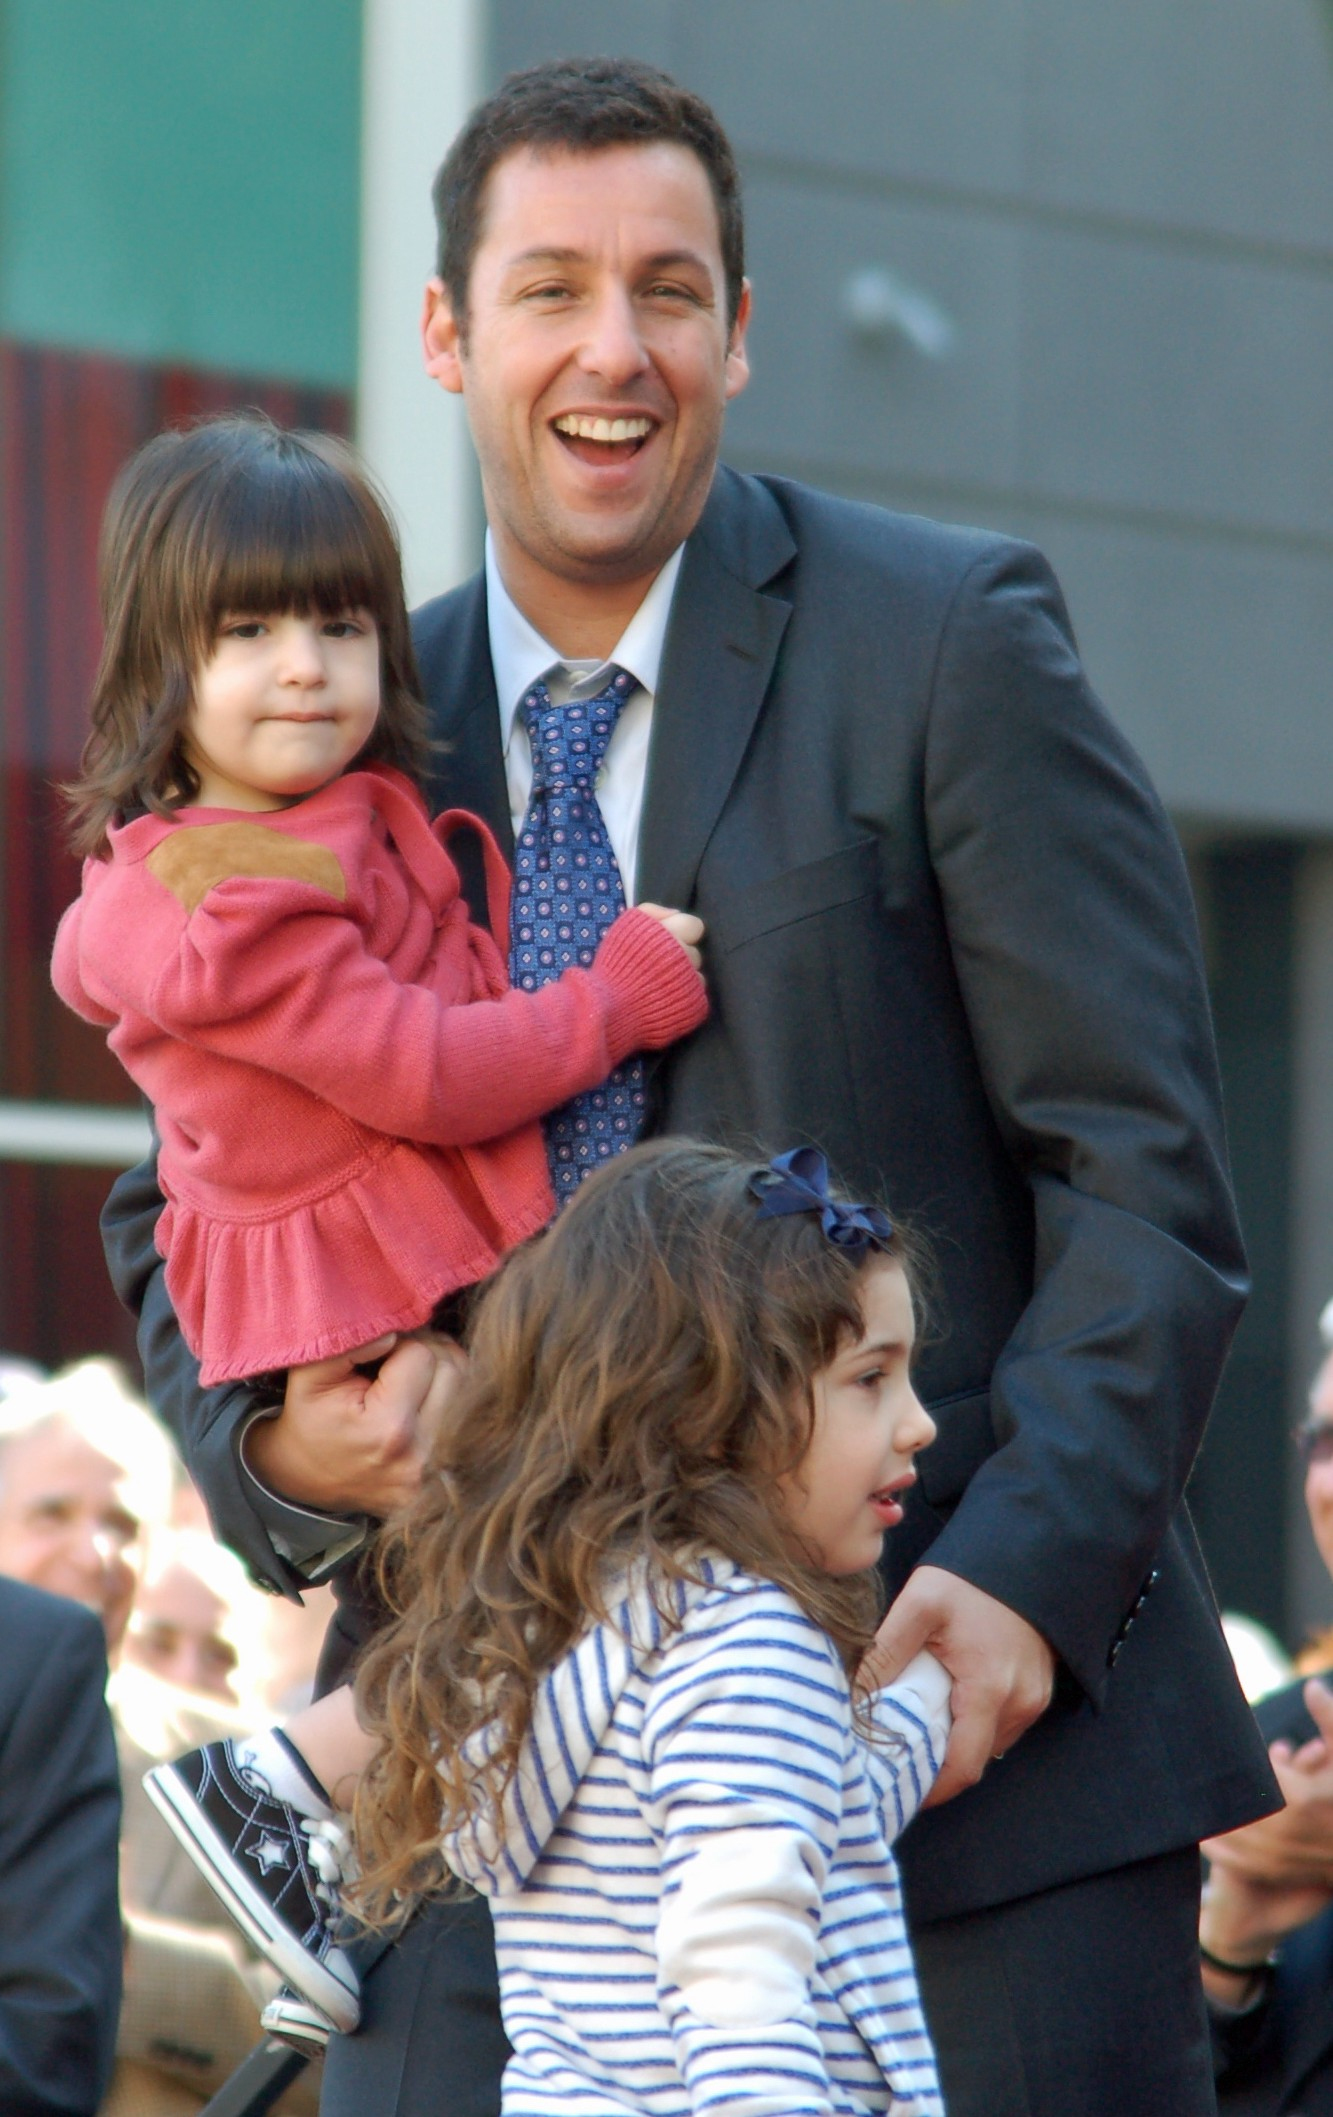 Adam Sandler is in a suit and tie, holding one of his daughters who has short brown hair and is wearing a pink top, his other daughter is standing in front of him she has longer curly hair and is in a blue and white striped top.